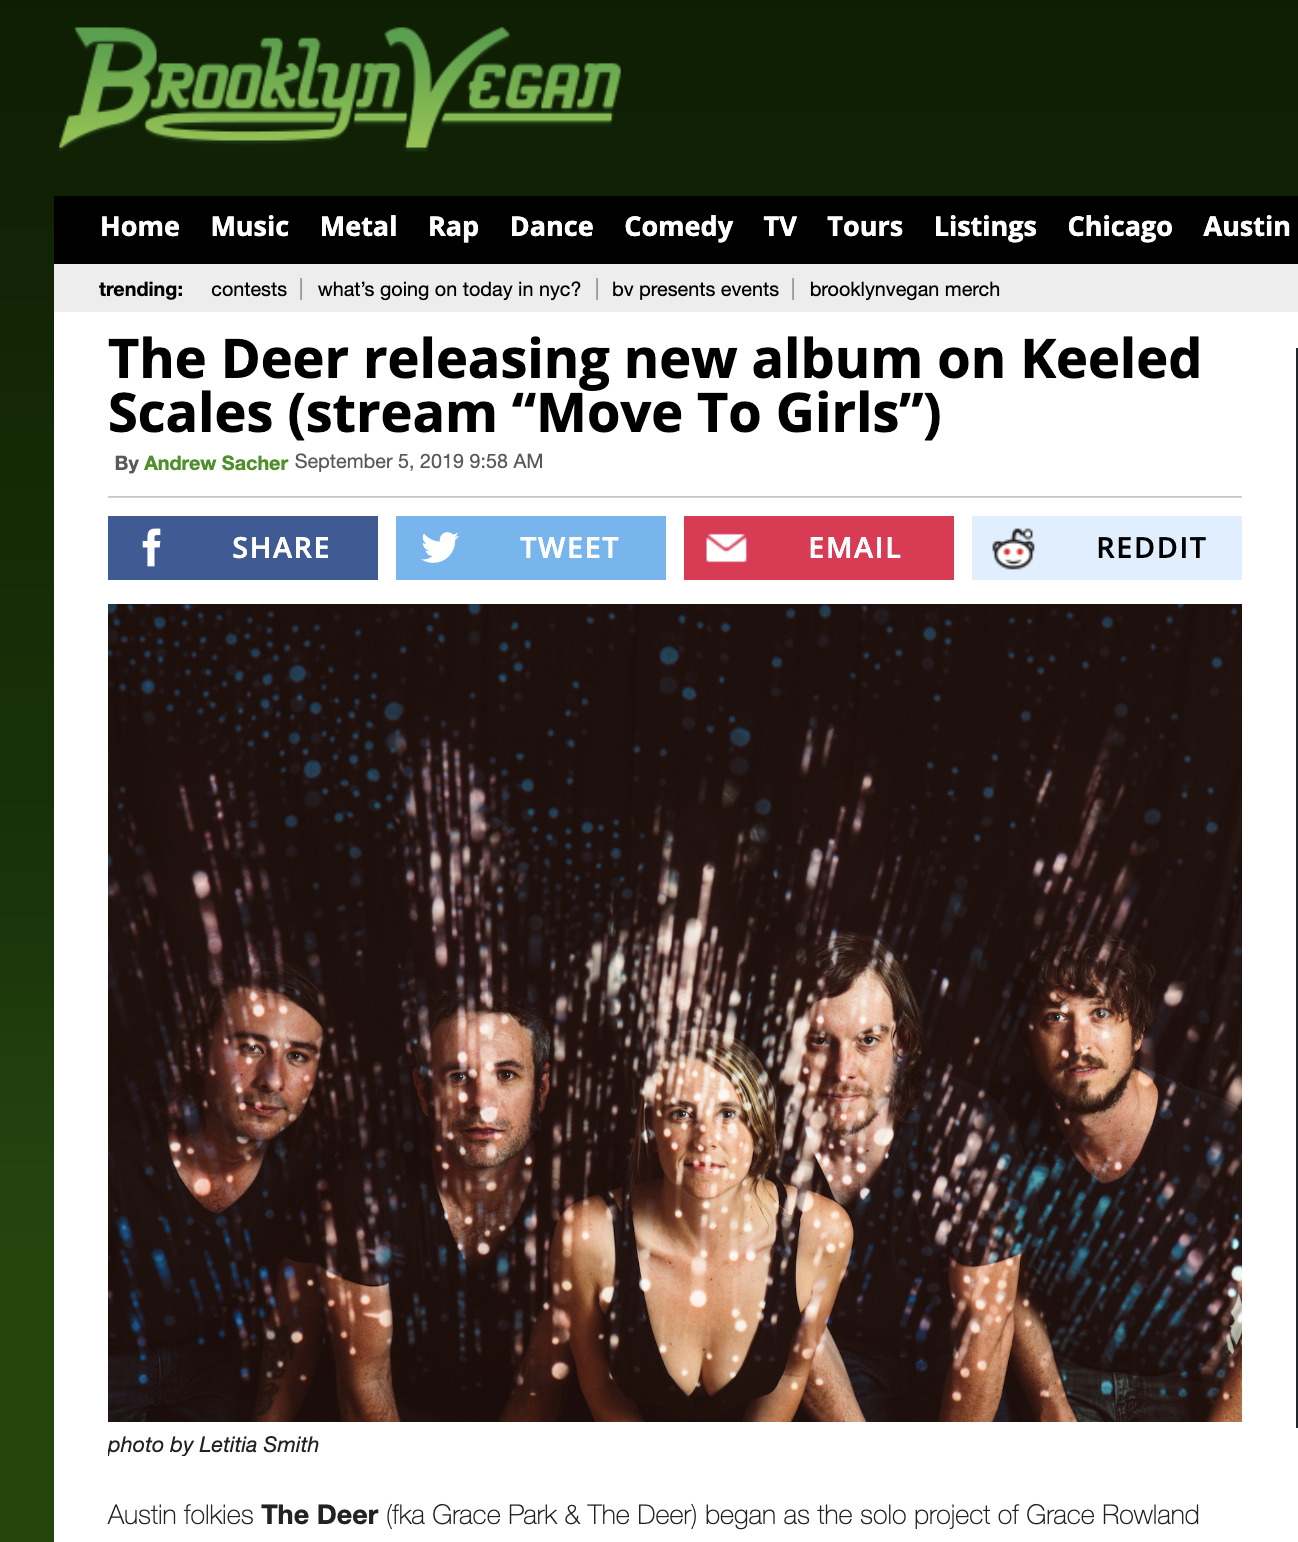 """The Deer premiere first single """"Move To Girls"""" from their new record coming Nov. 1st - BrooklyVegan has the premiere of """"Move To Girls,"""" the first single from Do No Harm coming November 1, 2019. They describe it as """"a lovely folk song with an atmospheric edge that should appeal to fans of other artists in or around the Keeled Scales family (like Big Thief).""""Grace says:Tour six months out of the year and tell me you don't re-evaluate your whole life every time you leave. My well-worn route to love and companionship had always represented only a small part of my orientation, and this song is about the changes that came about when I was able to confront it. I had been laying it out track by track for so long, but my path was full of divots and plateaus, curves and runways; it needed bridges in some places, step stones in others.Preorder link is (here)Tour dates:October 18   Austin, TX @ Antone'sOctober 29   Ashland, OR @ BrickroomOctober 31   Eugene, OR @ Wildcraft Cider WorksNovember 1   Portland, OR @ The Old ChurchNovember 2   Seattle, WA @ Conor BryneNovember 5   Mystic, UT @ Mystic Hot SpringsNovember 7   Denver, CO @ The Lost LakeNovember 8   Gold Hill, CO @ Gold Hill InnNovember 9   Carbondale, CO @ Steve's Guitars"""